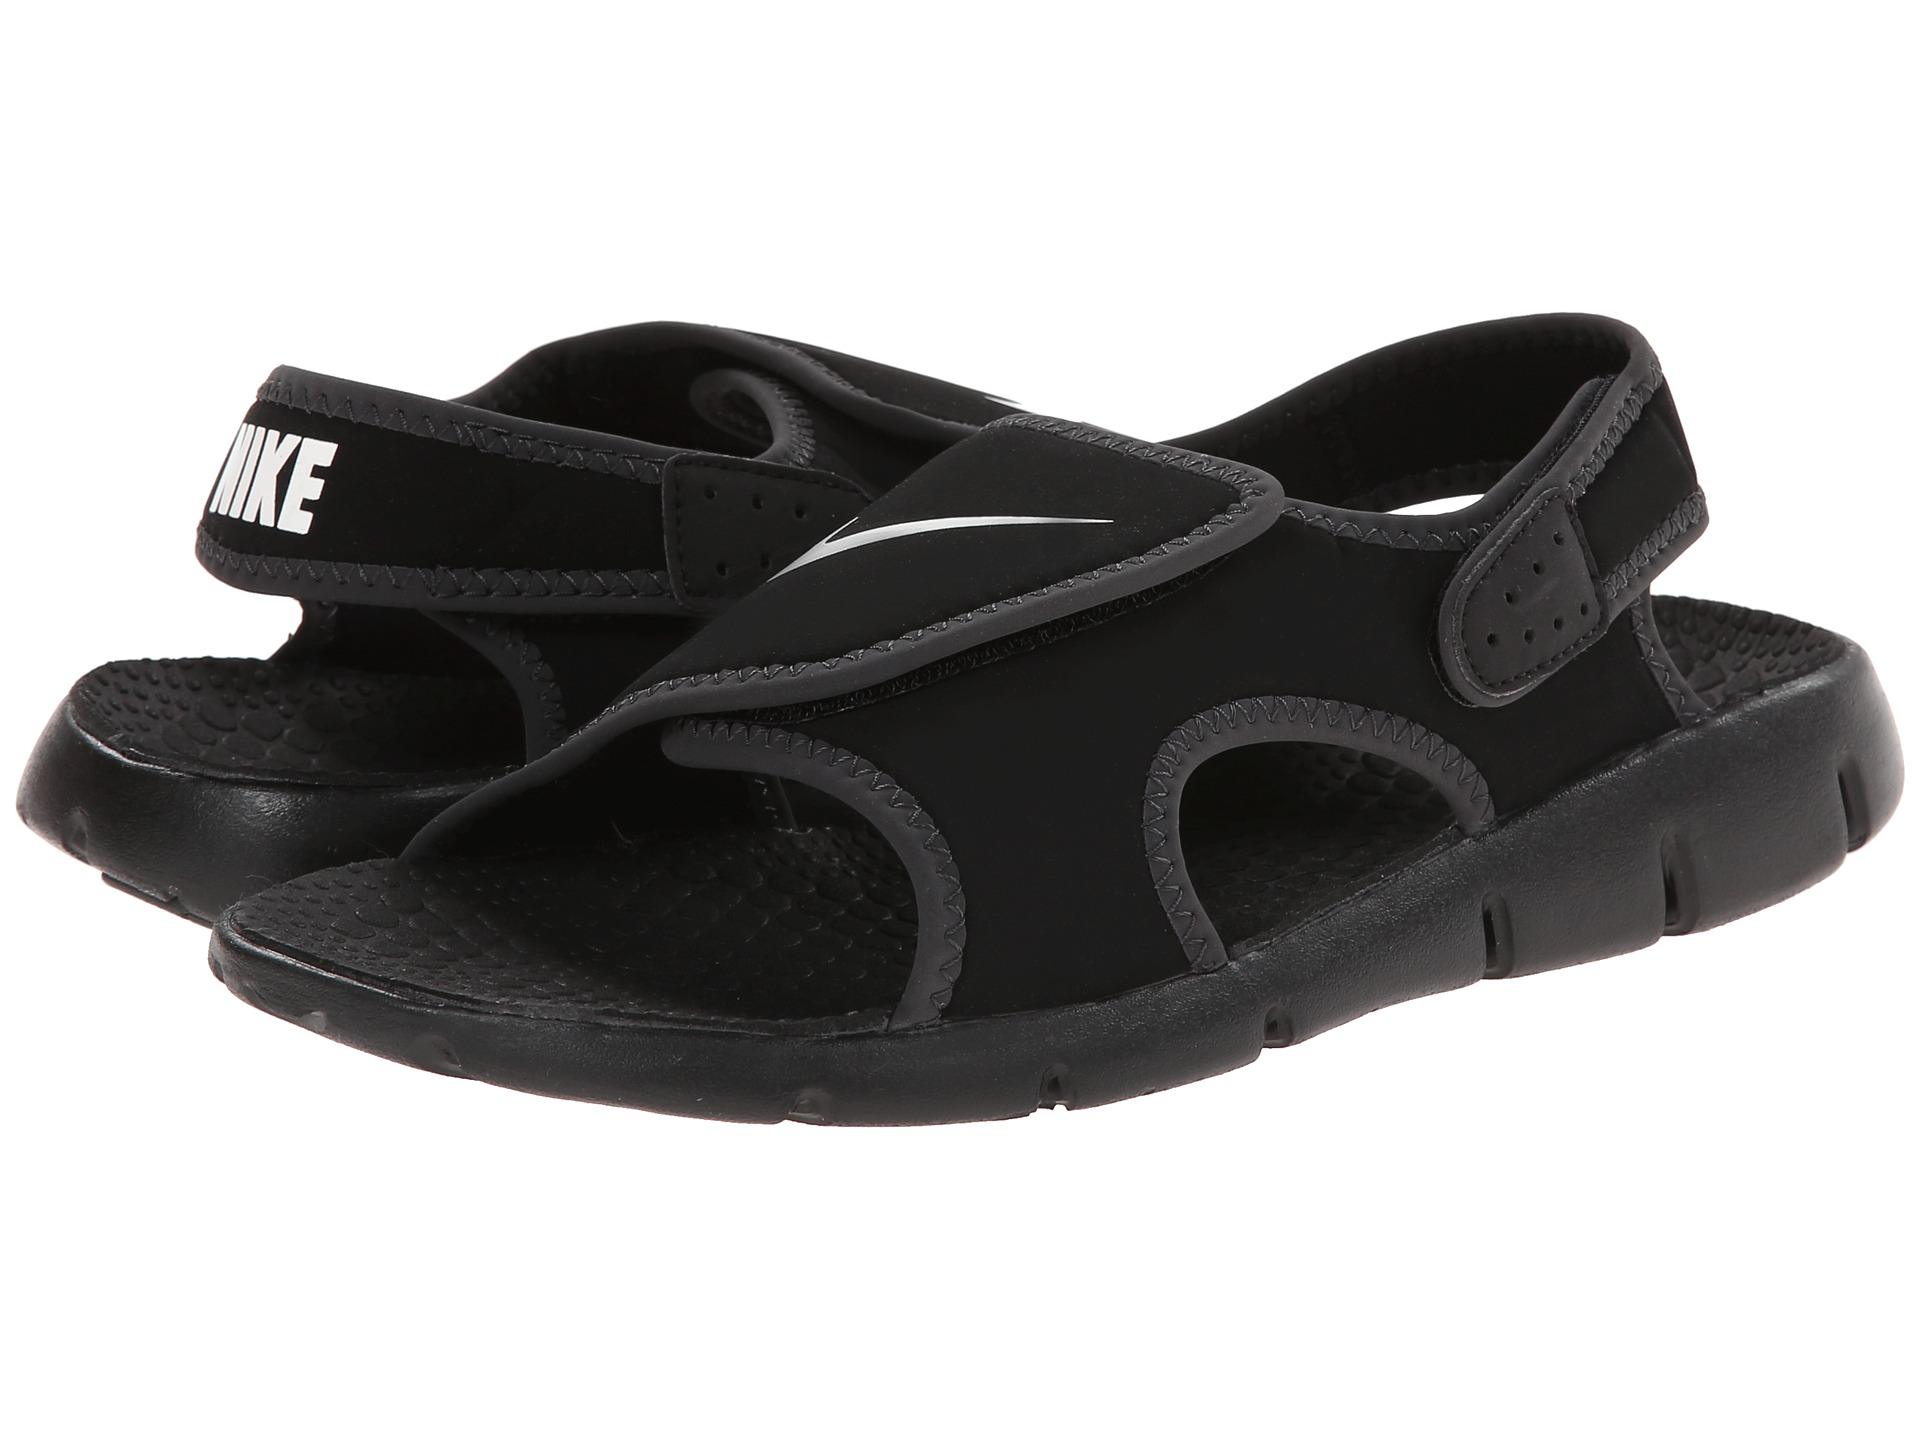 83e296011b4 ... Shoes - Black Anthracite White  toddler boy nike sandals ...